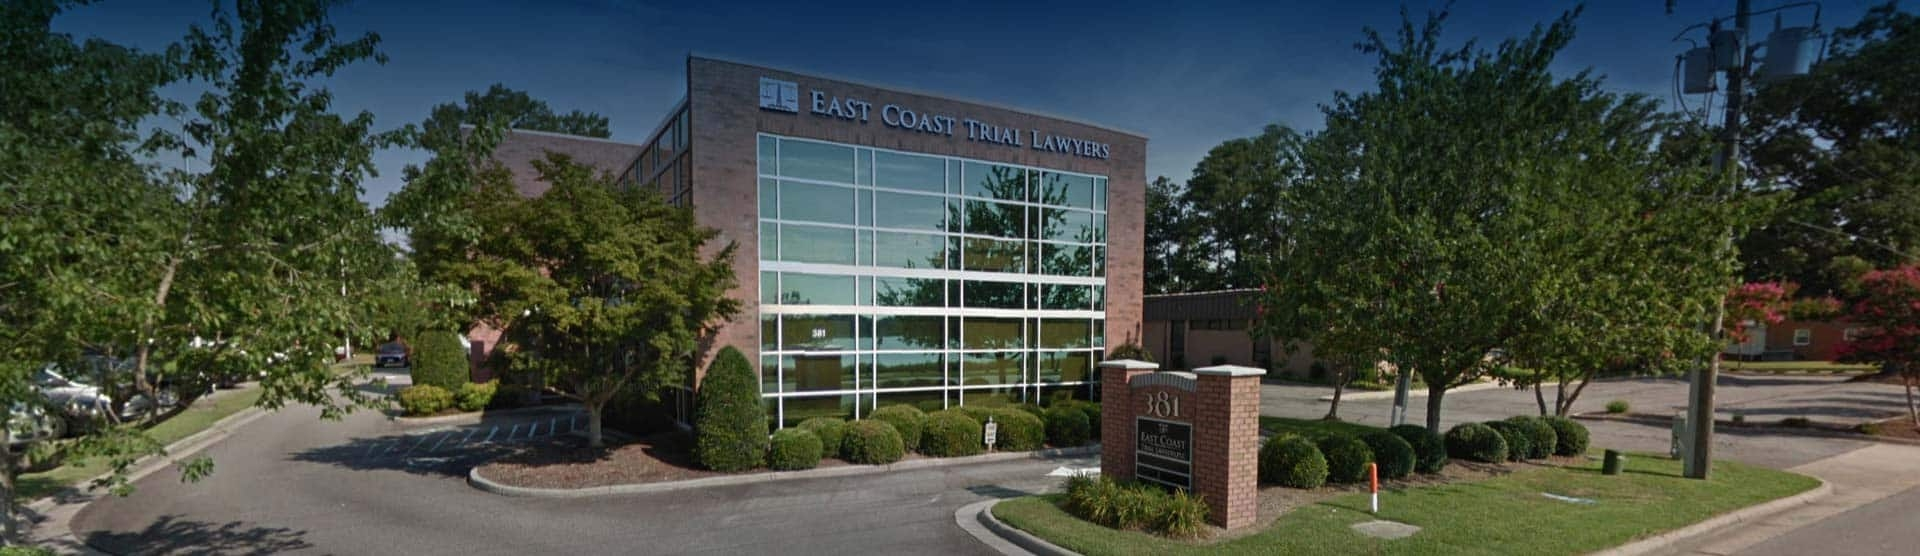 East Coast Trial Lawyers (@eastcoasttriallawyers) Cover Image